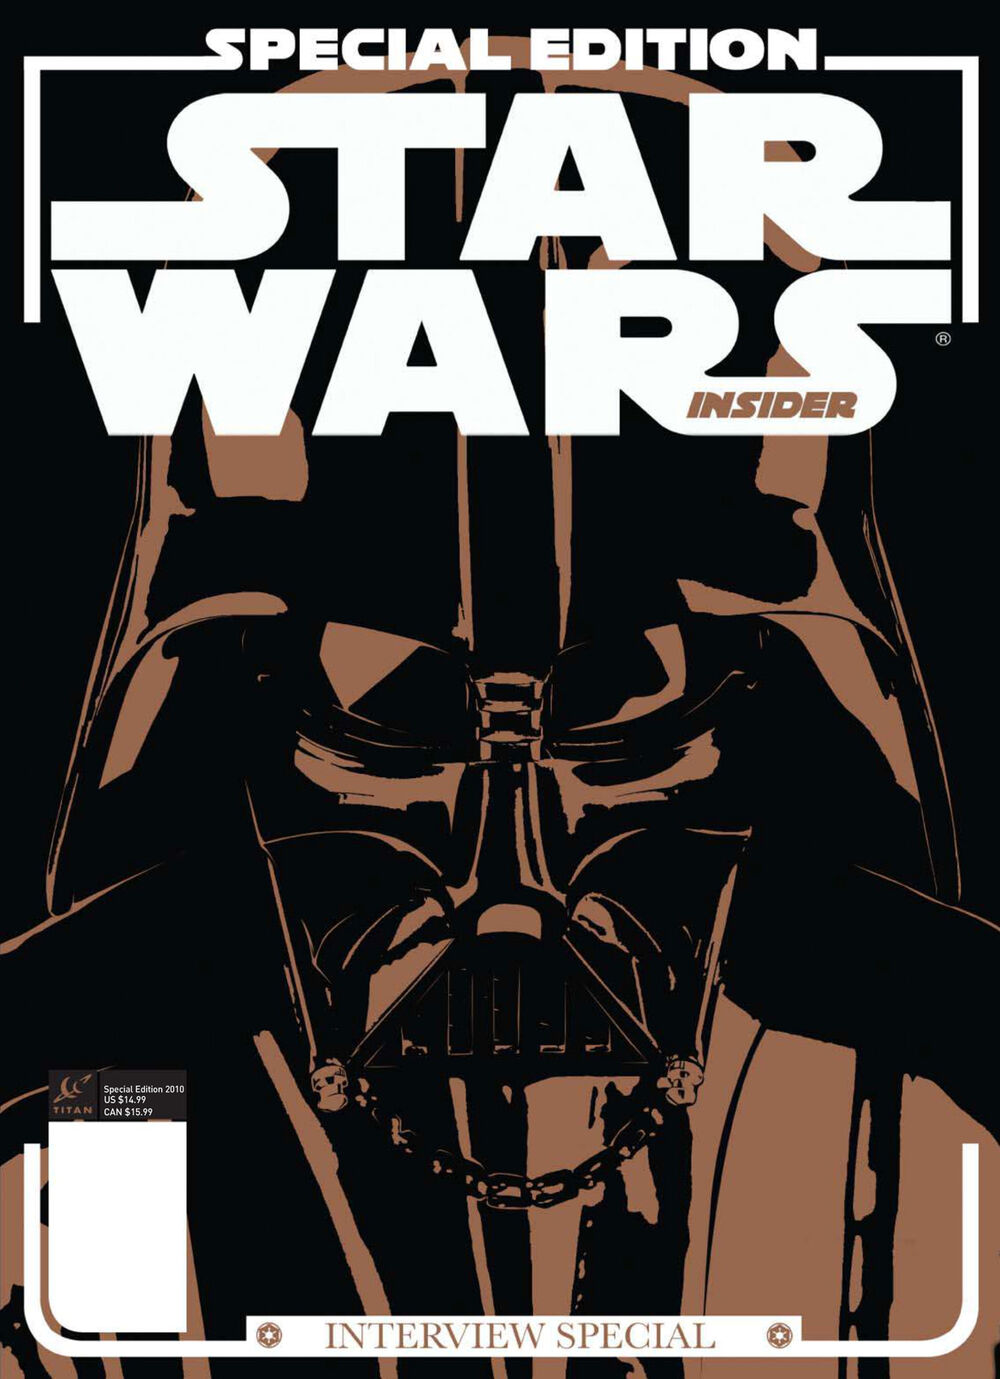 Star Wars Insider Special Edition 2011